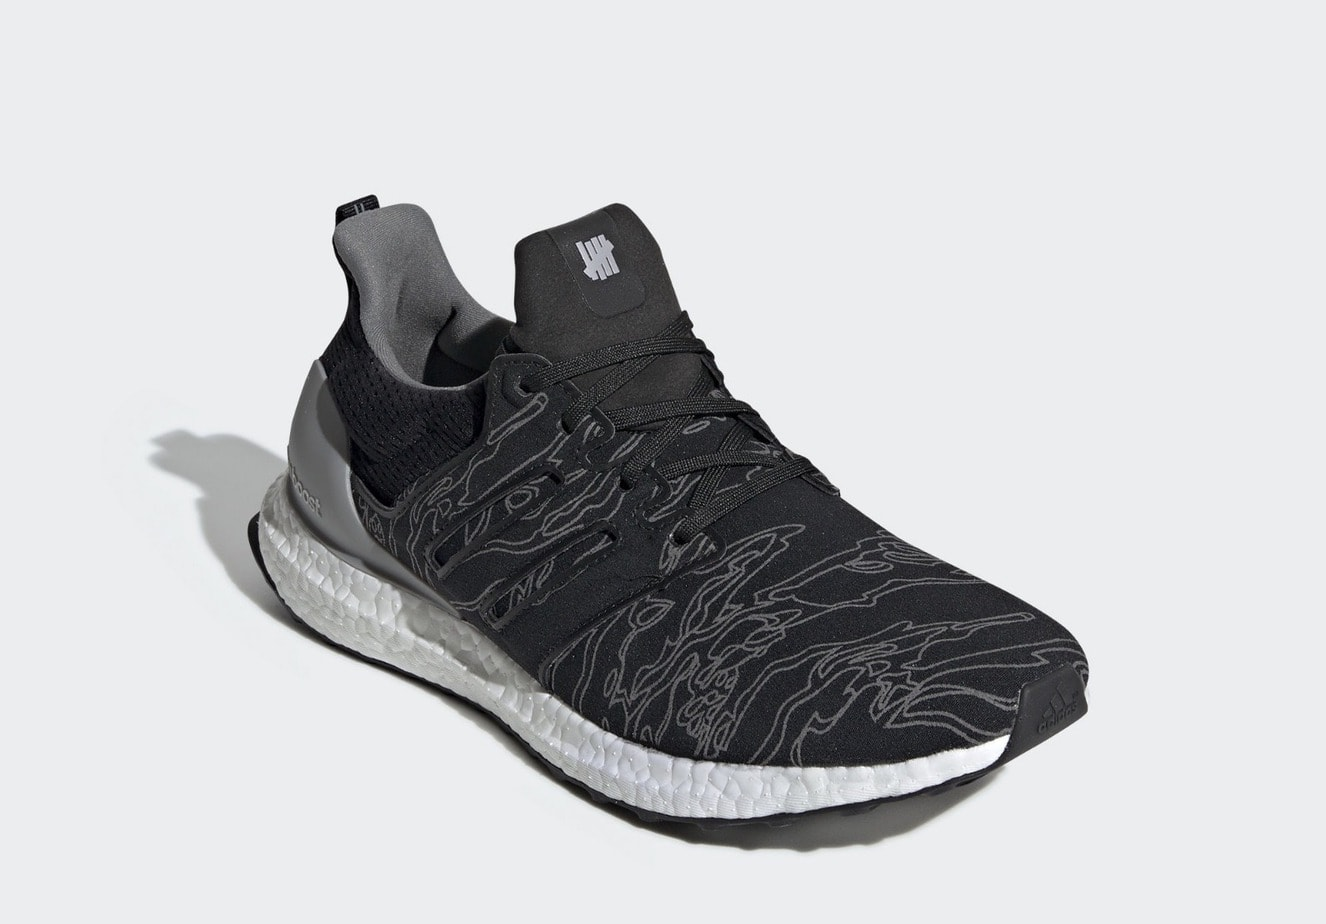 e0d745451f9 Undefeated x adidas Ultra Boost 2.0 August 2018 - JustFreshkicks